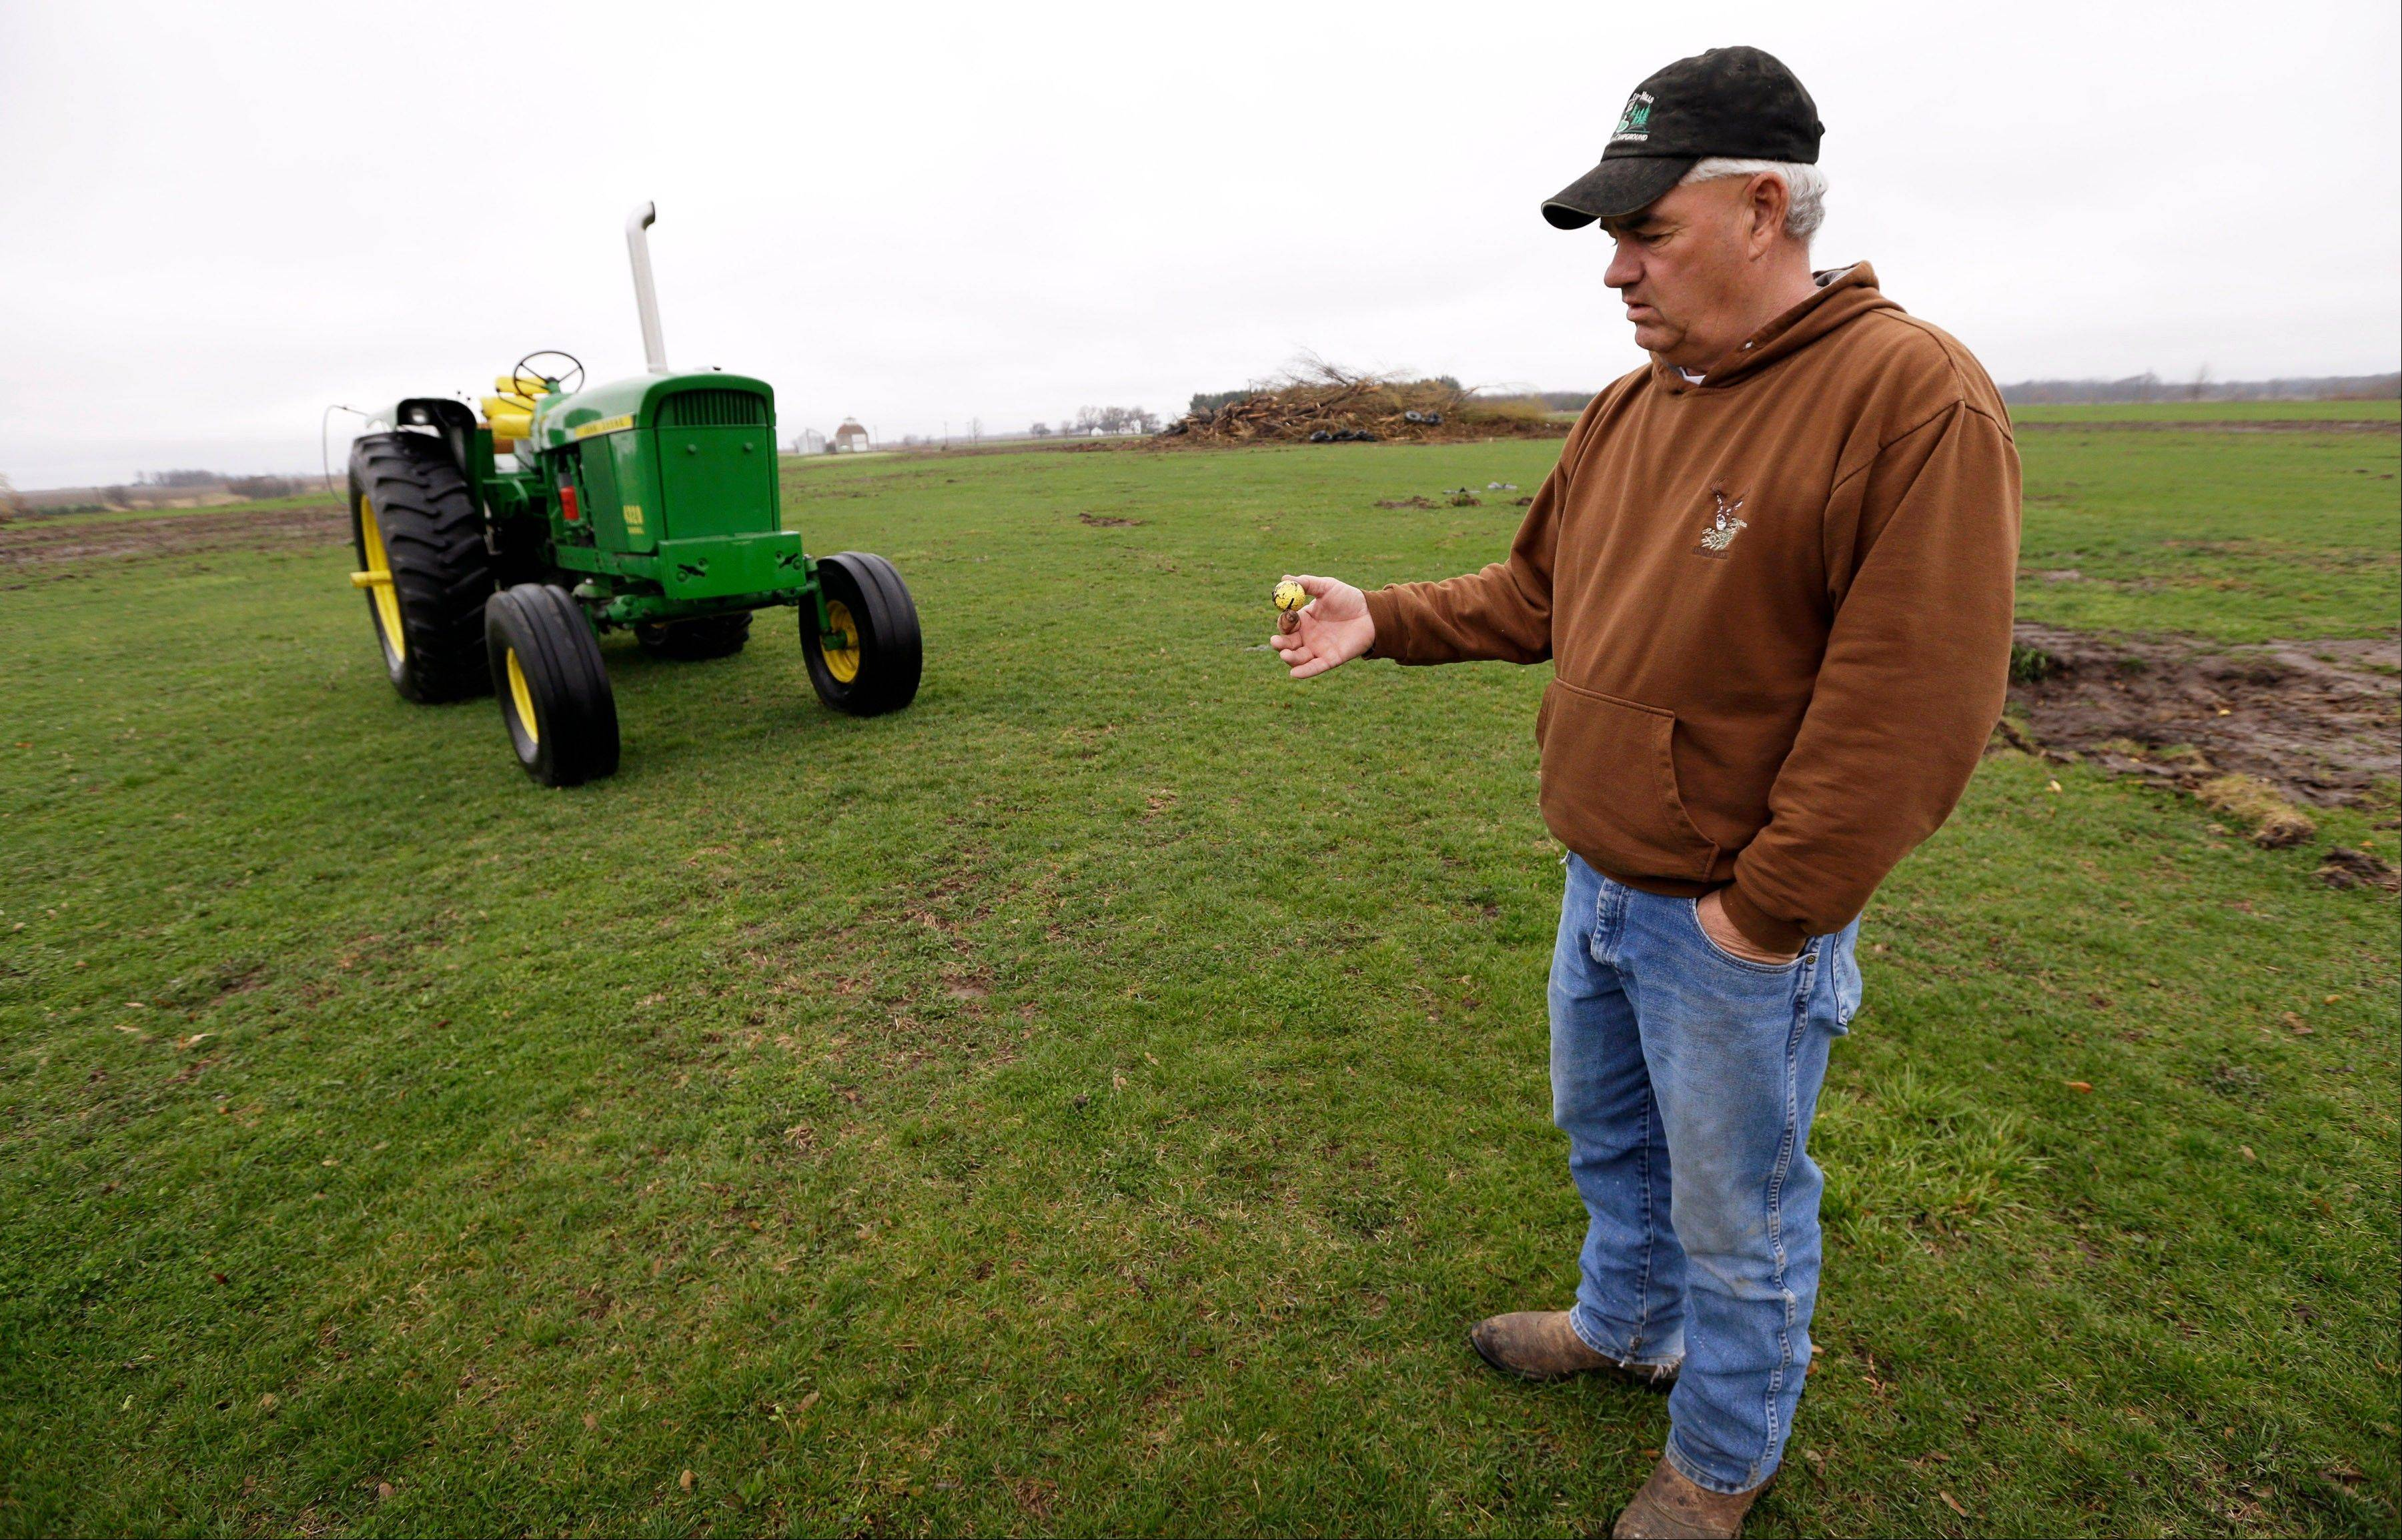 Farmer Clark Kelly holds a golf ball he dug out of a fairway on the Hend-Co-Hills Golf Course, in Biggsville, Ill.